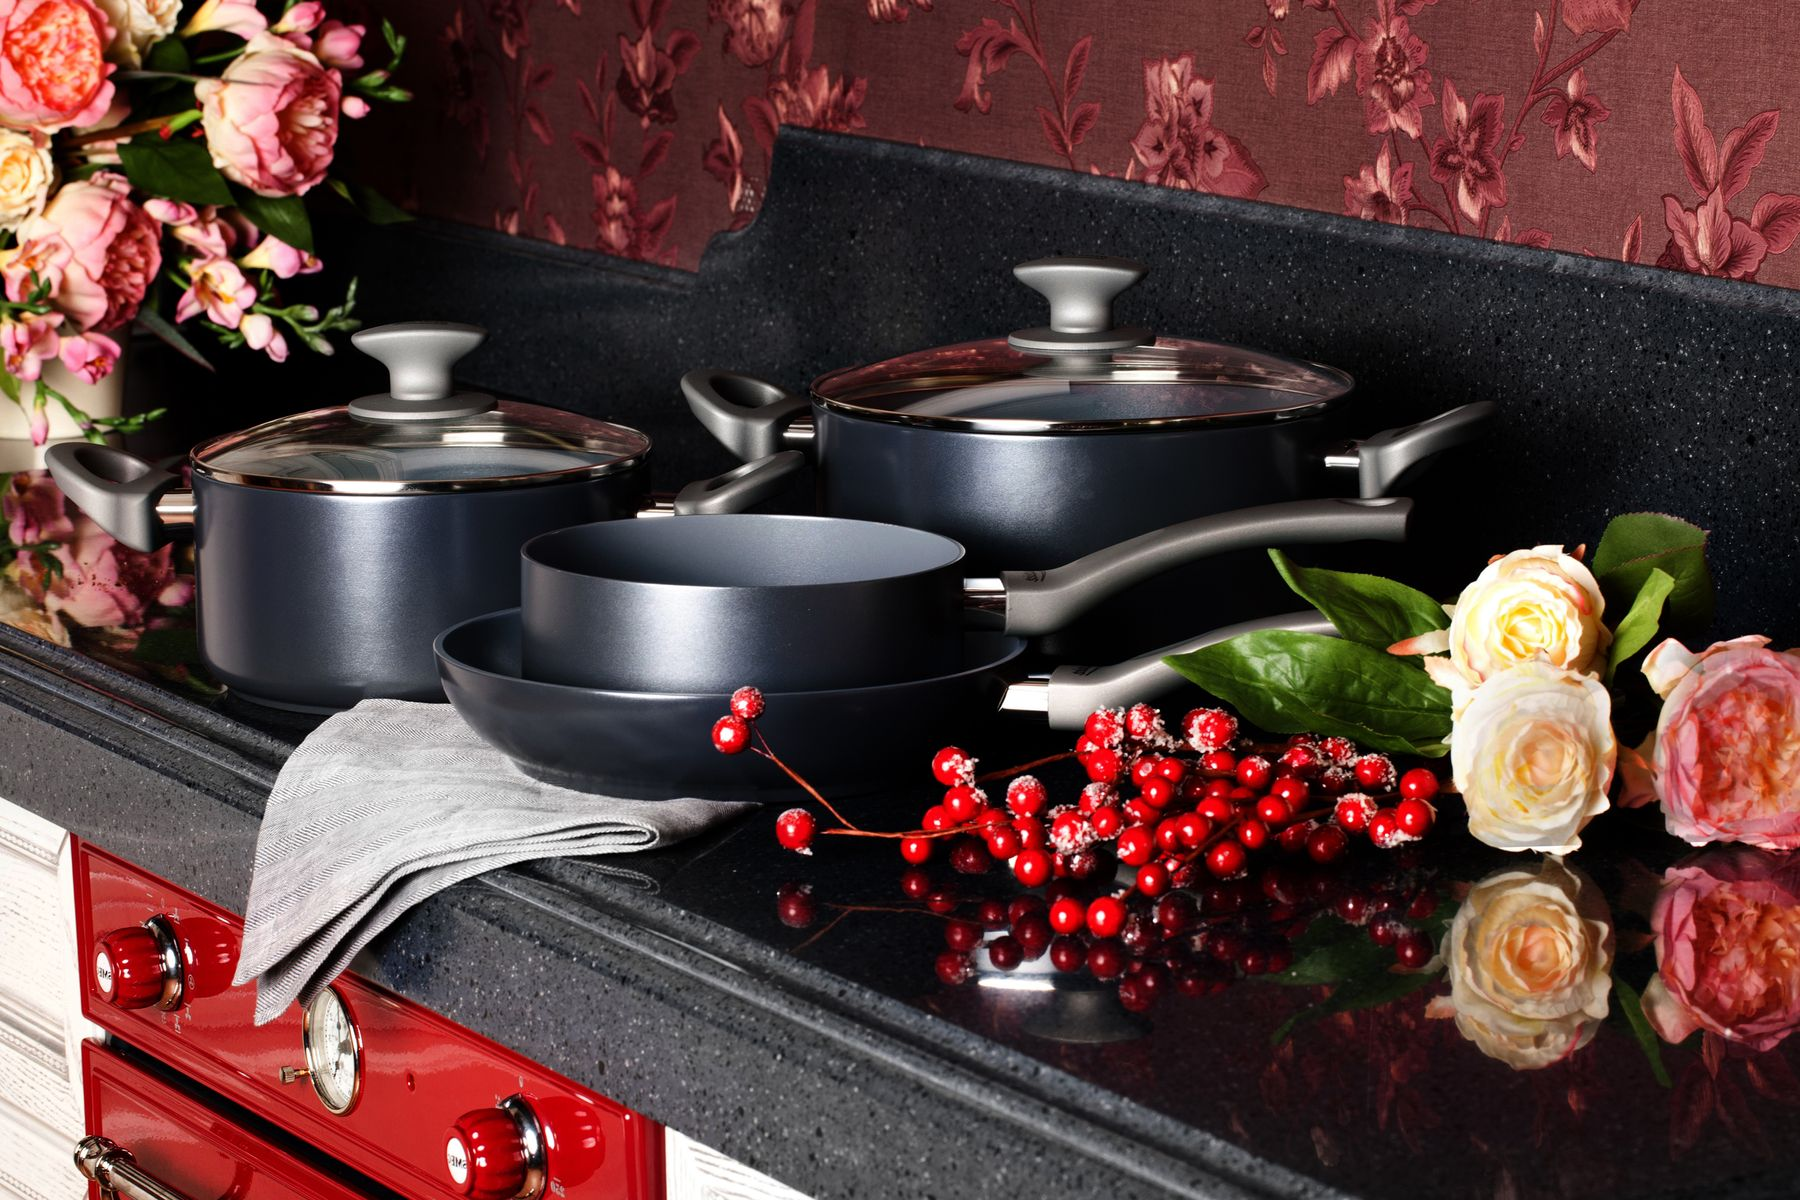 Why You Should Use Warm Water to Wash Your Pot and Pans shutterstock 393937138